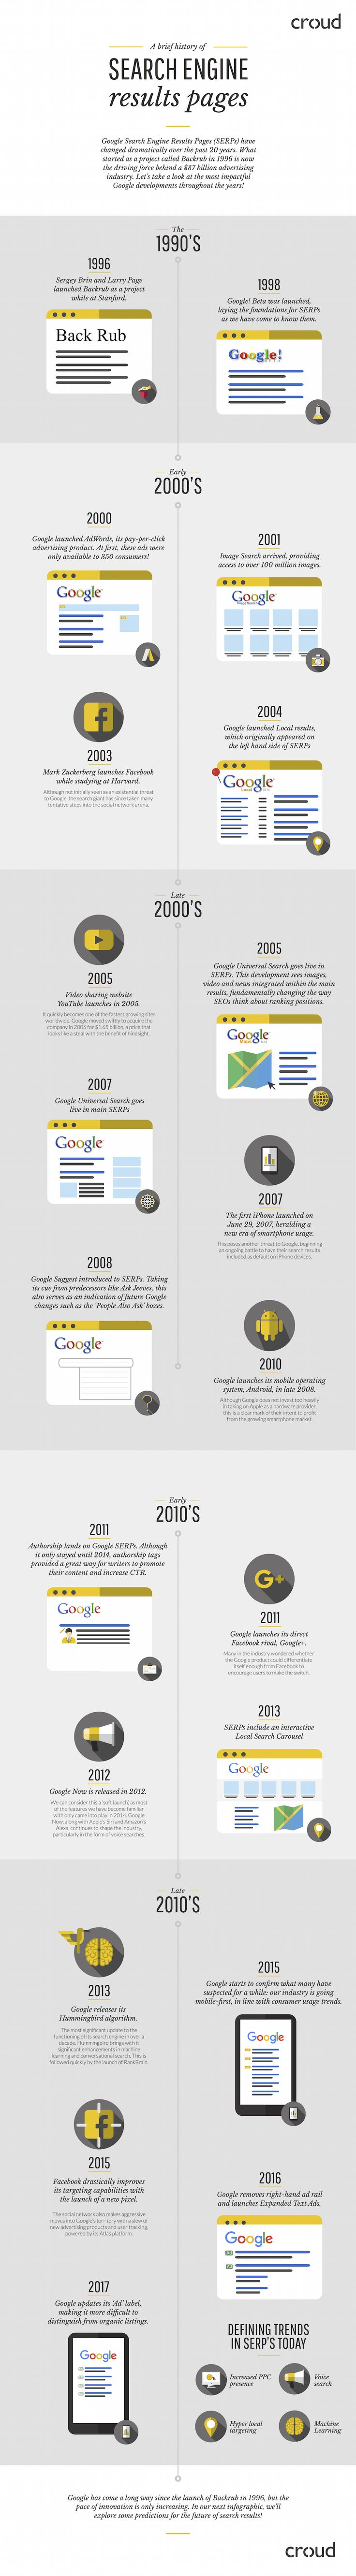 A Brief History of Search Engine Results Pages #Infographic #WebDesign